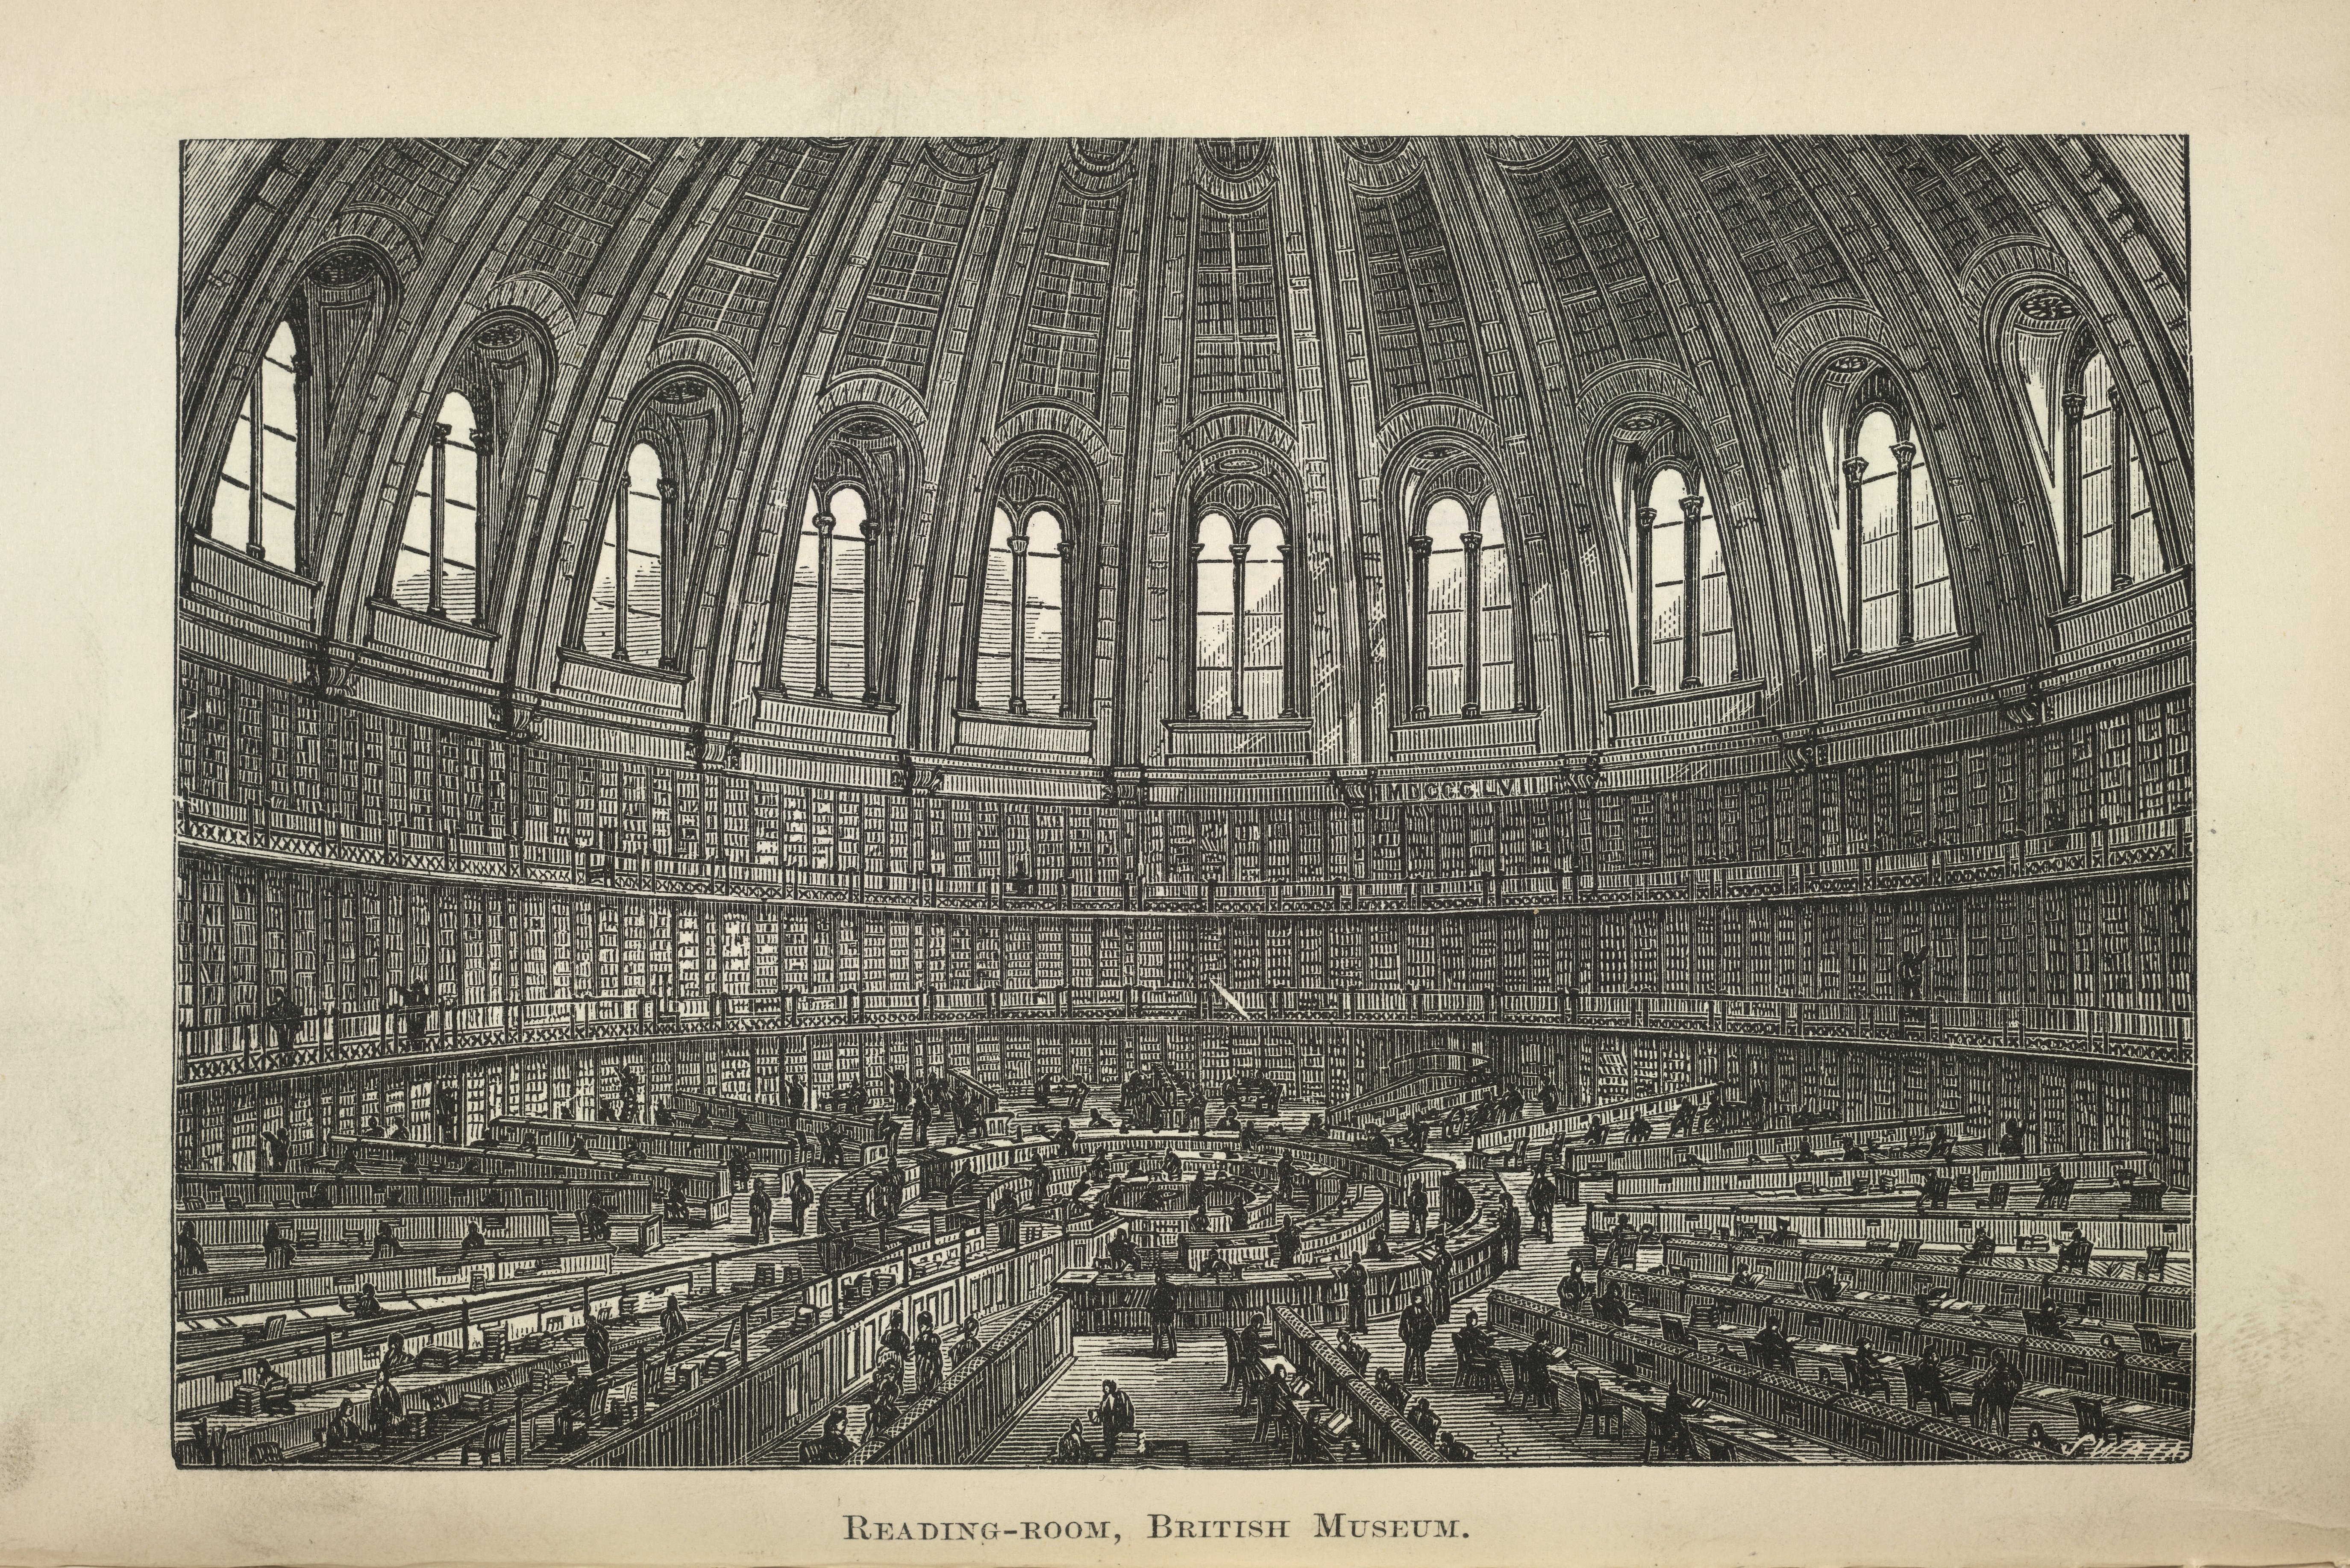 The Round Reading Room at the British Museum, from an illustrated plate in 'Free Public Libraries, their organisation, uses and management' by Thomas Greenwood, Simpkin, Marshall & Co.: London, 1886. British Library shelfmark 11902.b.52.